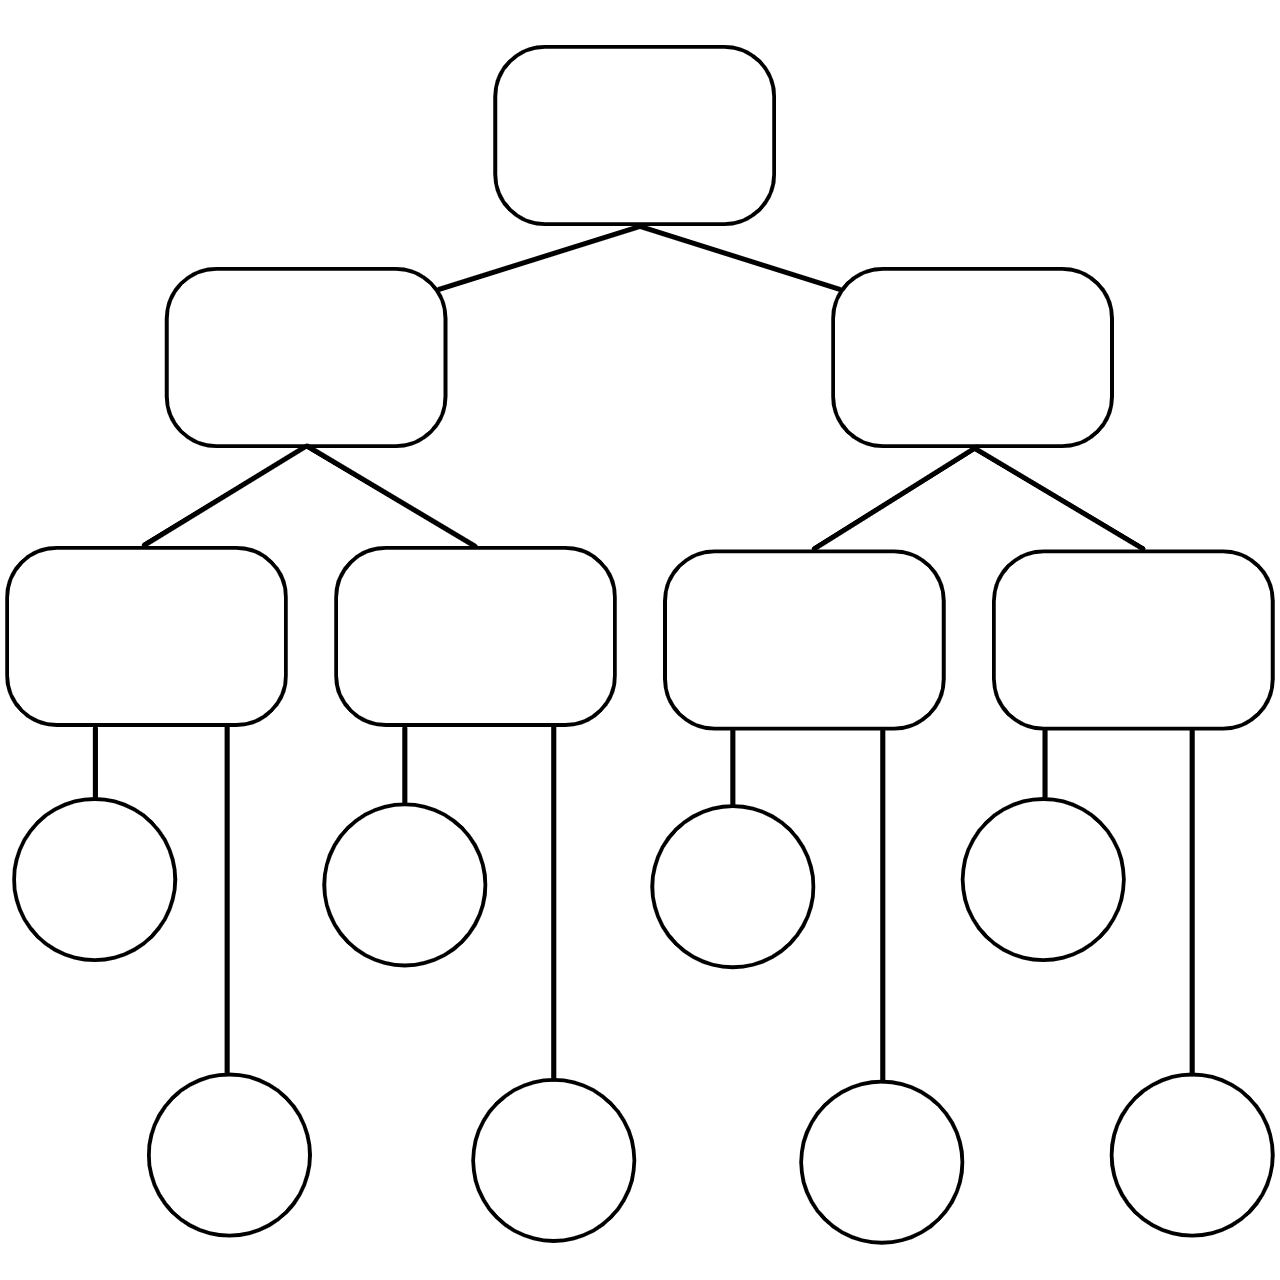 An example Concept Map Template.